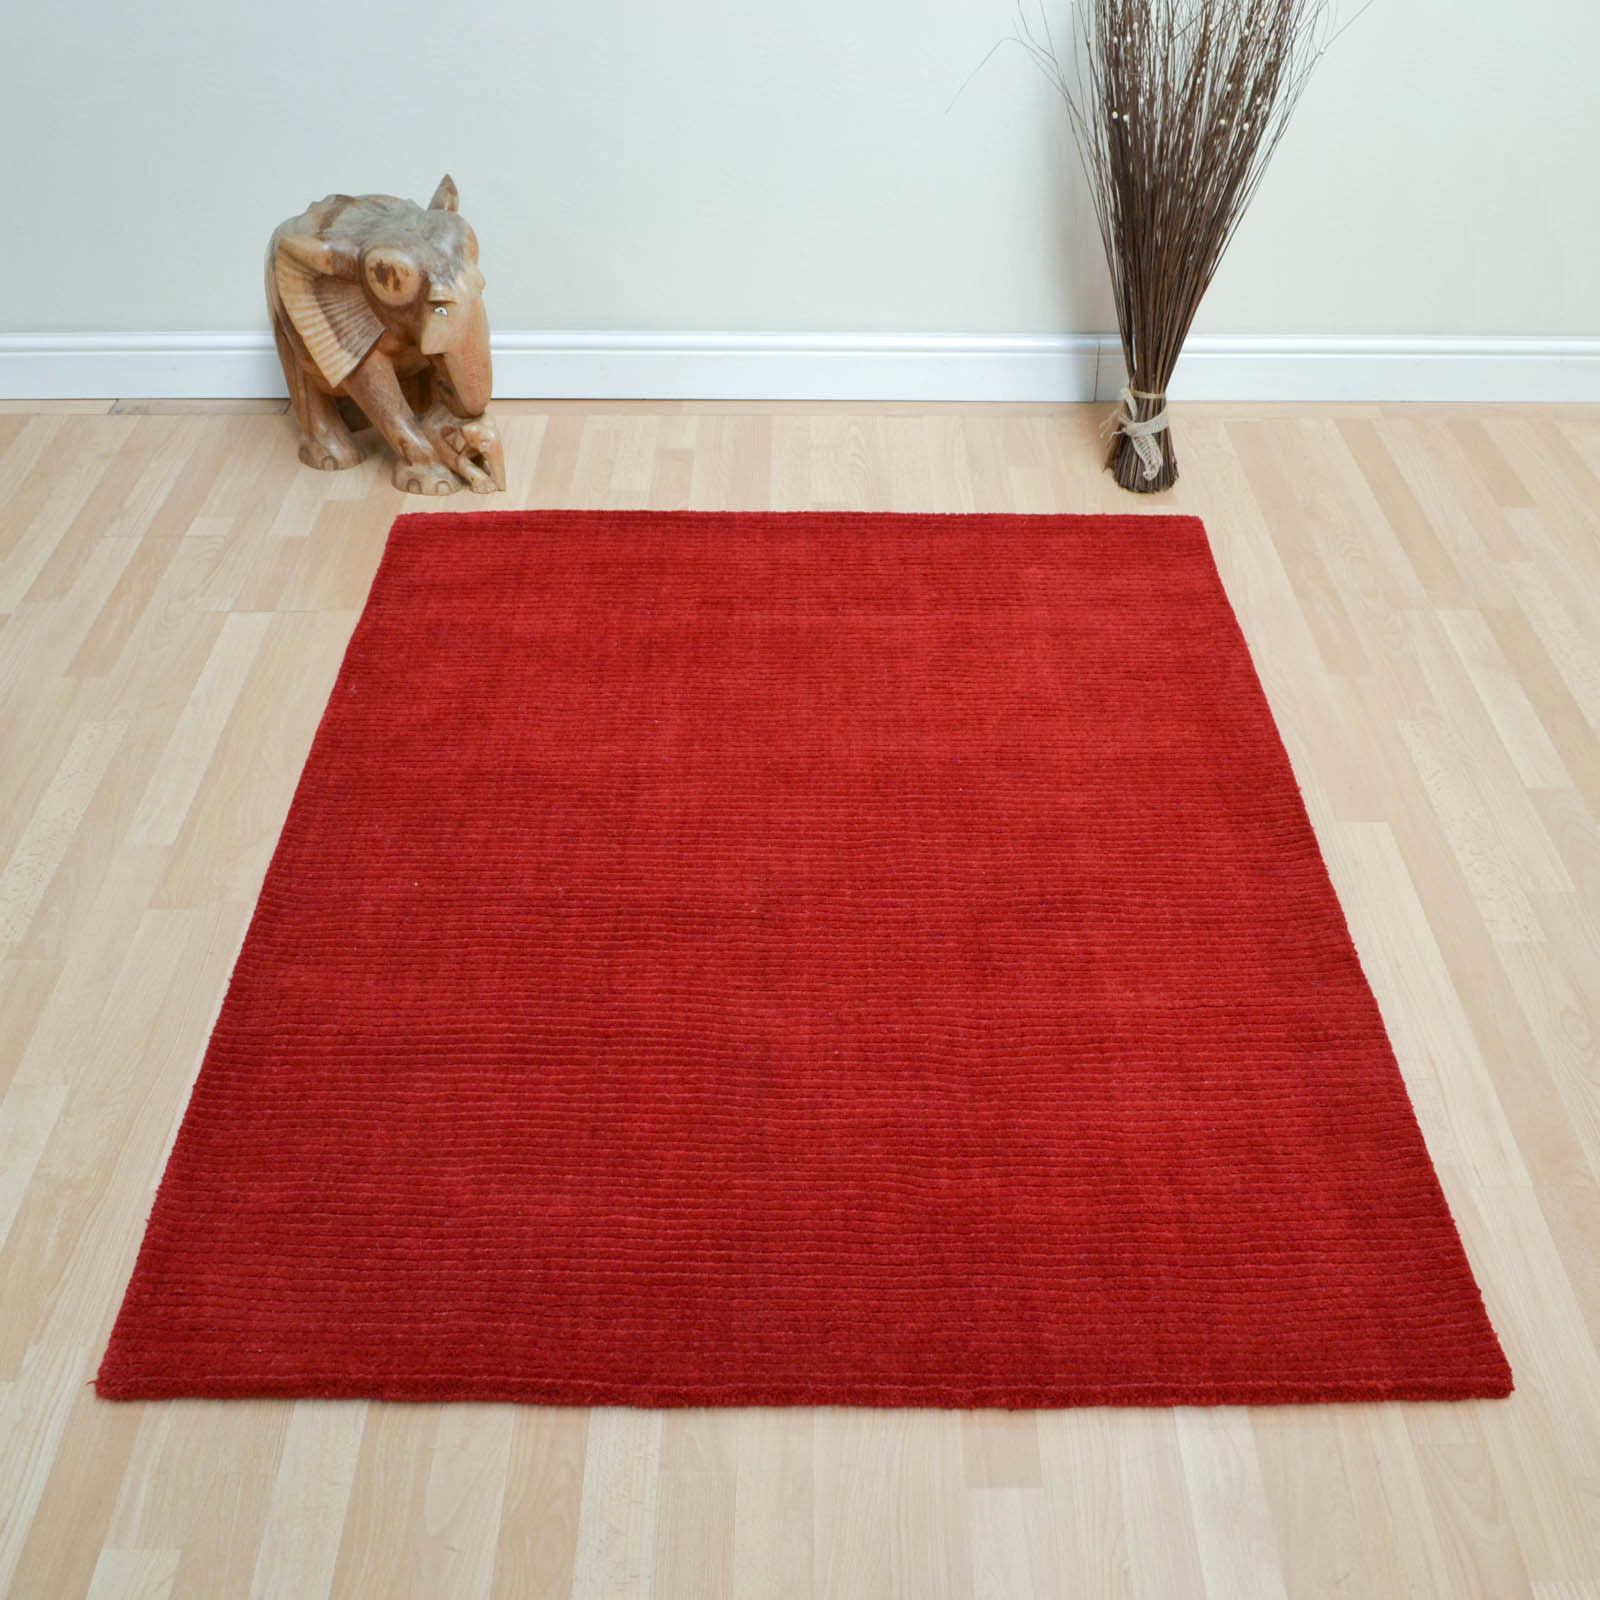 Pinstripe Rugs AO01 in Red